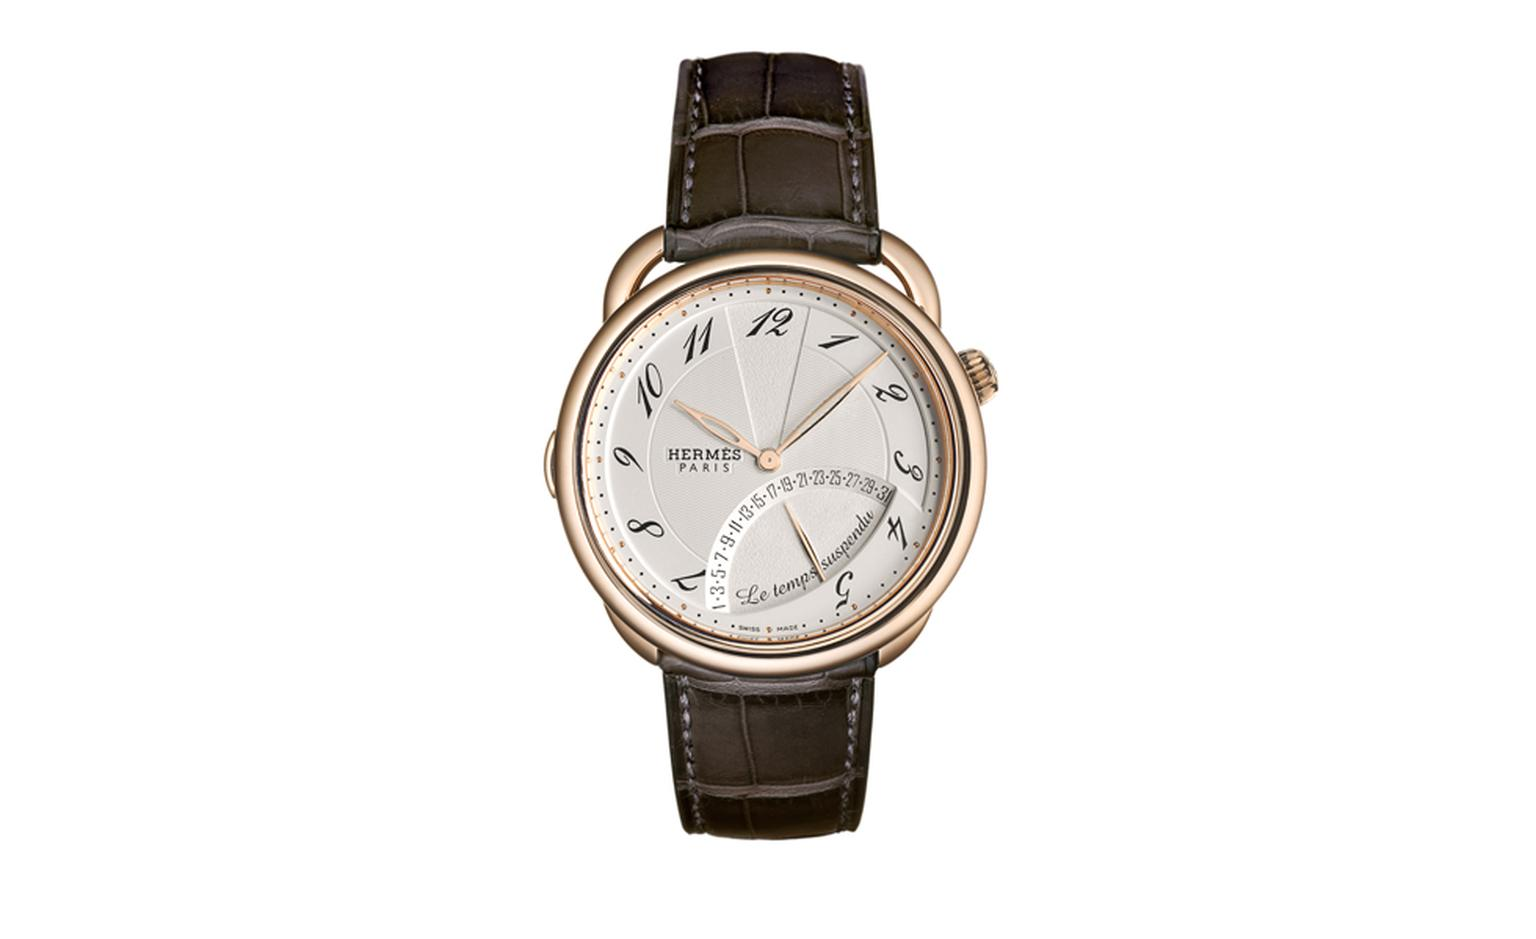 HERMES, Temps Suspendu is mechanical watch in rose gold with a brand new complication. Push the crown to suspend time at which point the two hands will sit at 12  o'clock until the crown is pushed again to resume timekeeping function.